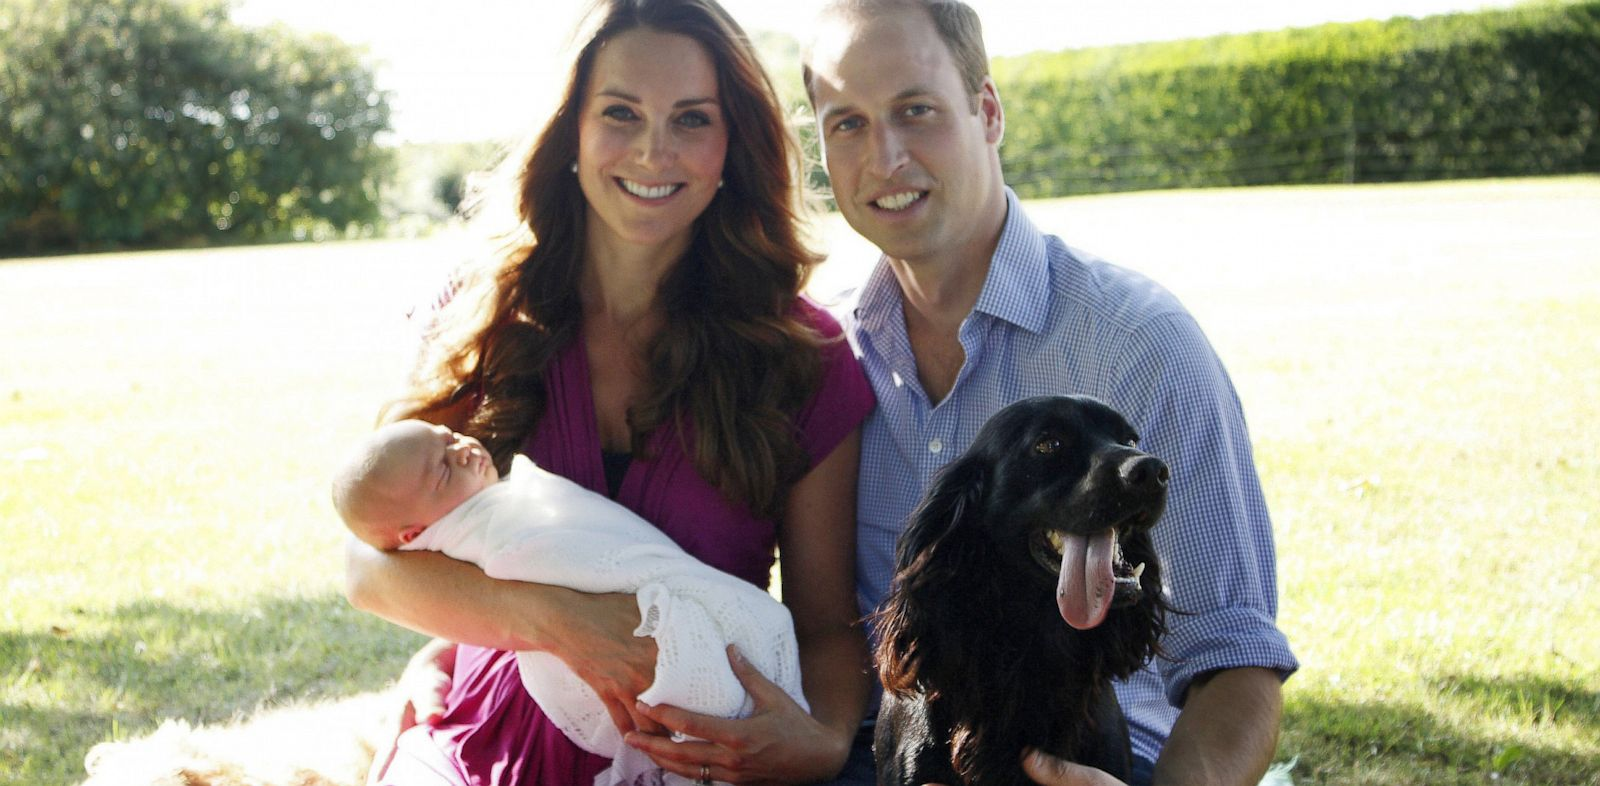 PHOTO: The Duke and Duchess of Cambridge and Prince George